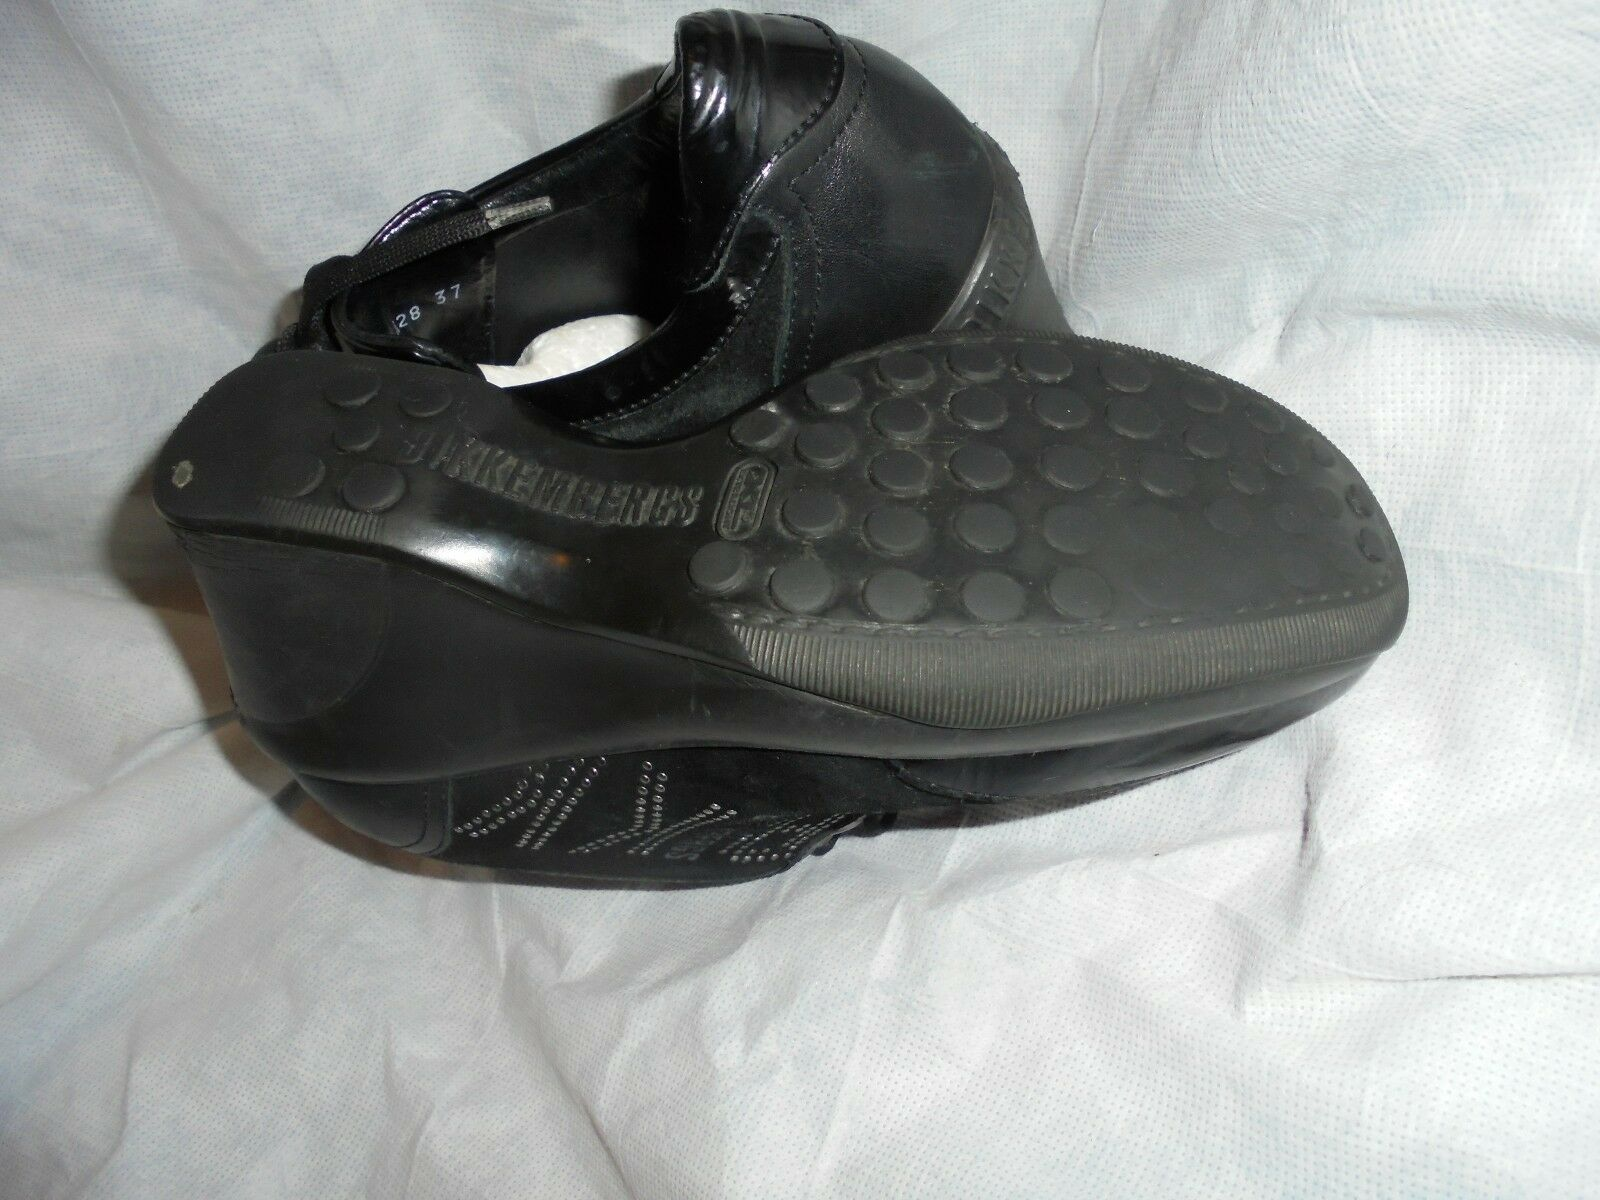 BIKKEMBERGS WOMEN BLACK LEATHER SIZE  ZIP/BUCKLE WEDGE TRAINERS SIZE LEATHER UK 4 EU 37 VGC 00a3f3